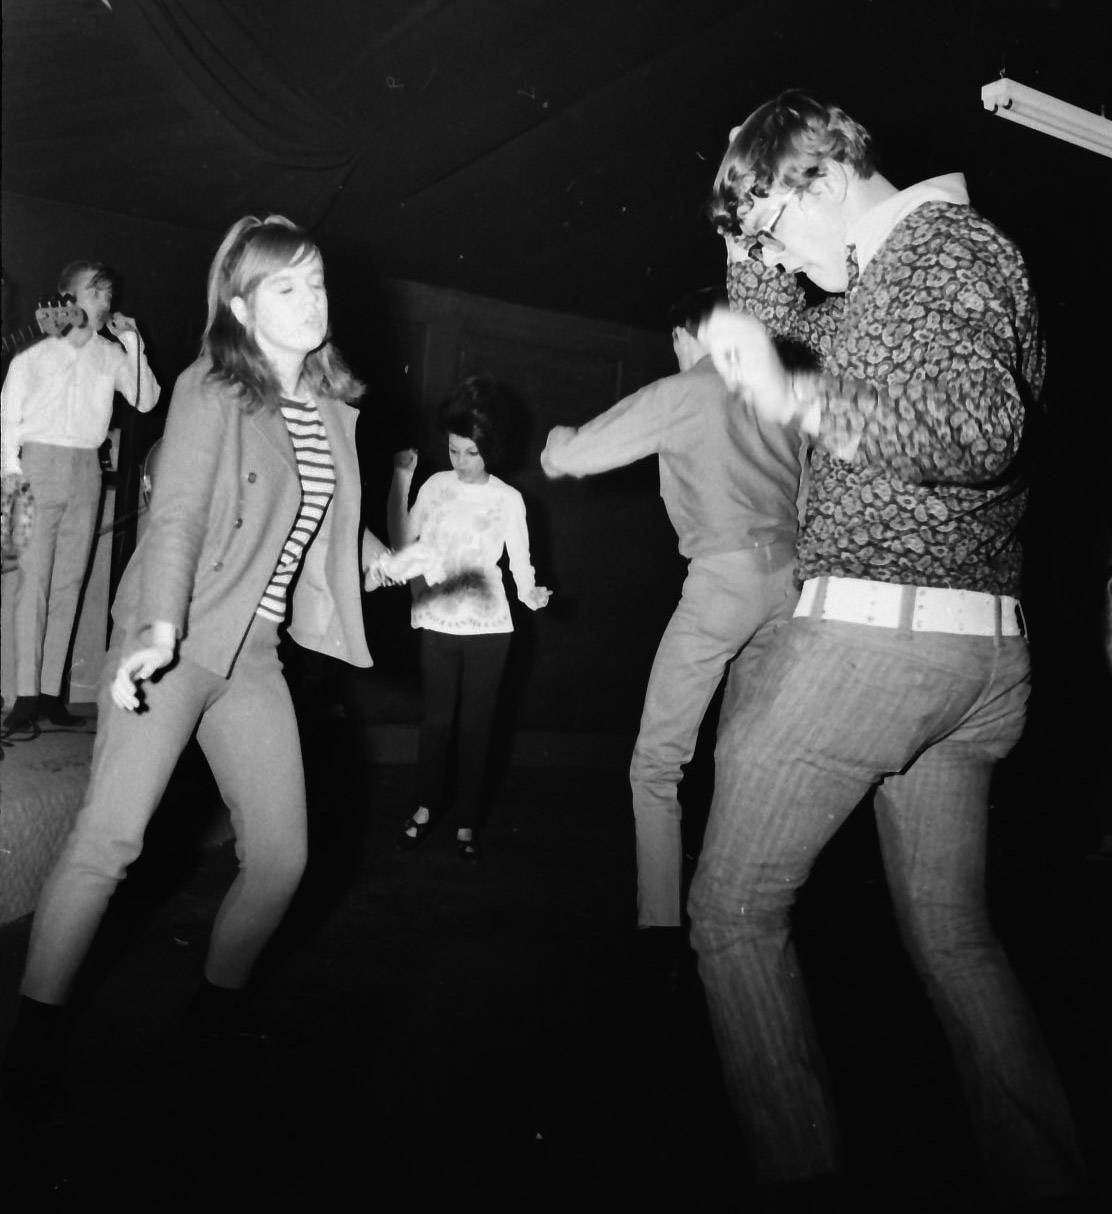 White belts and flowered shirts took center stage during a Roselle teen club in 1967.